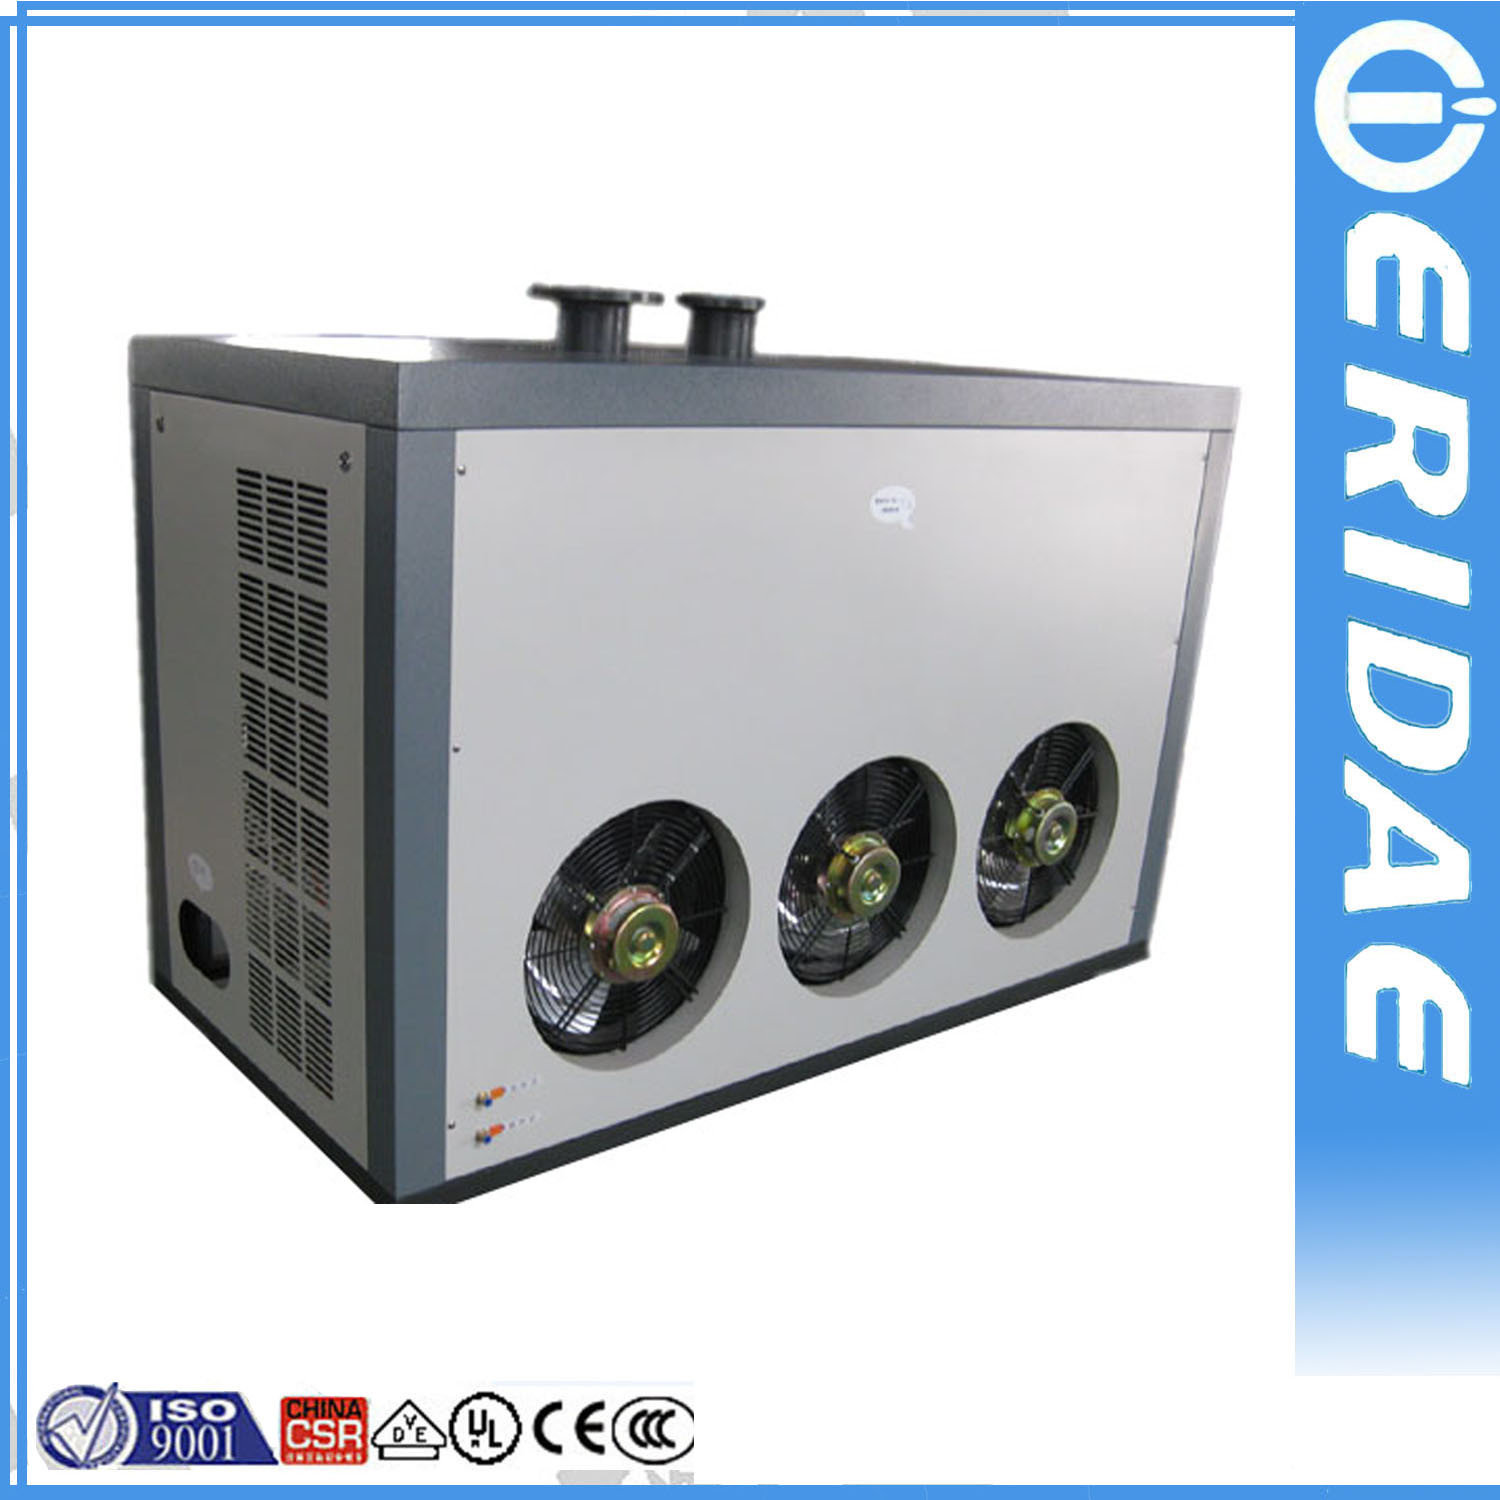 Air Dryer For Air Compressor >> Hot Item Factory Direct Sell Air Cooling Air Dryer Freeze Dryer For Air Compressors